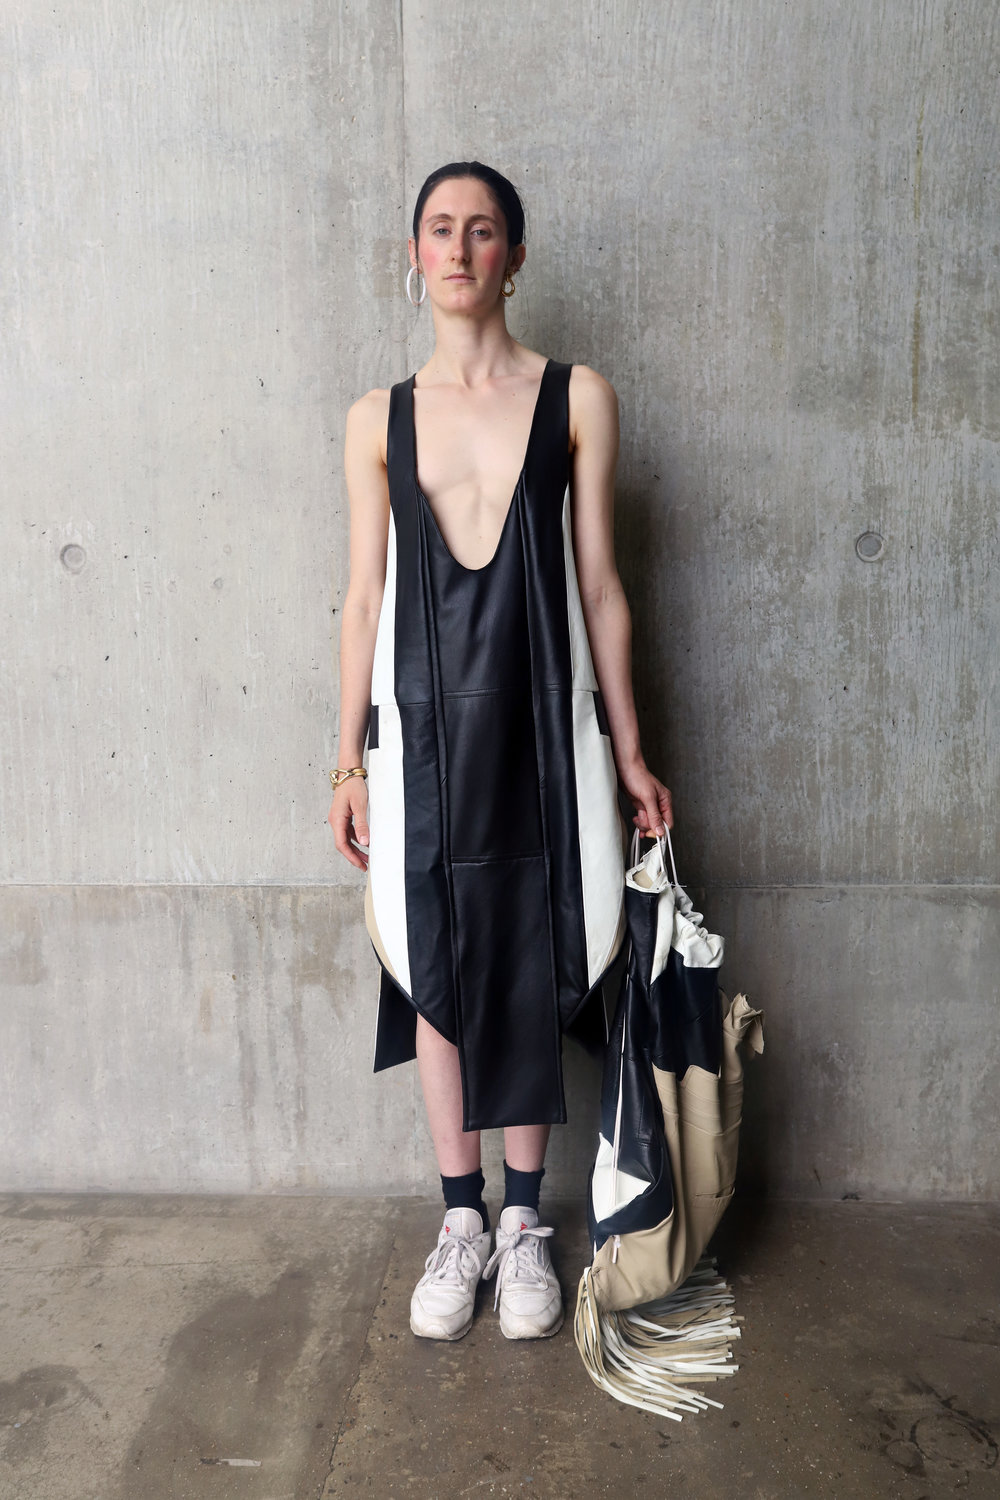 - Dress and oversized spike bag made from vintage leather jackets